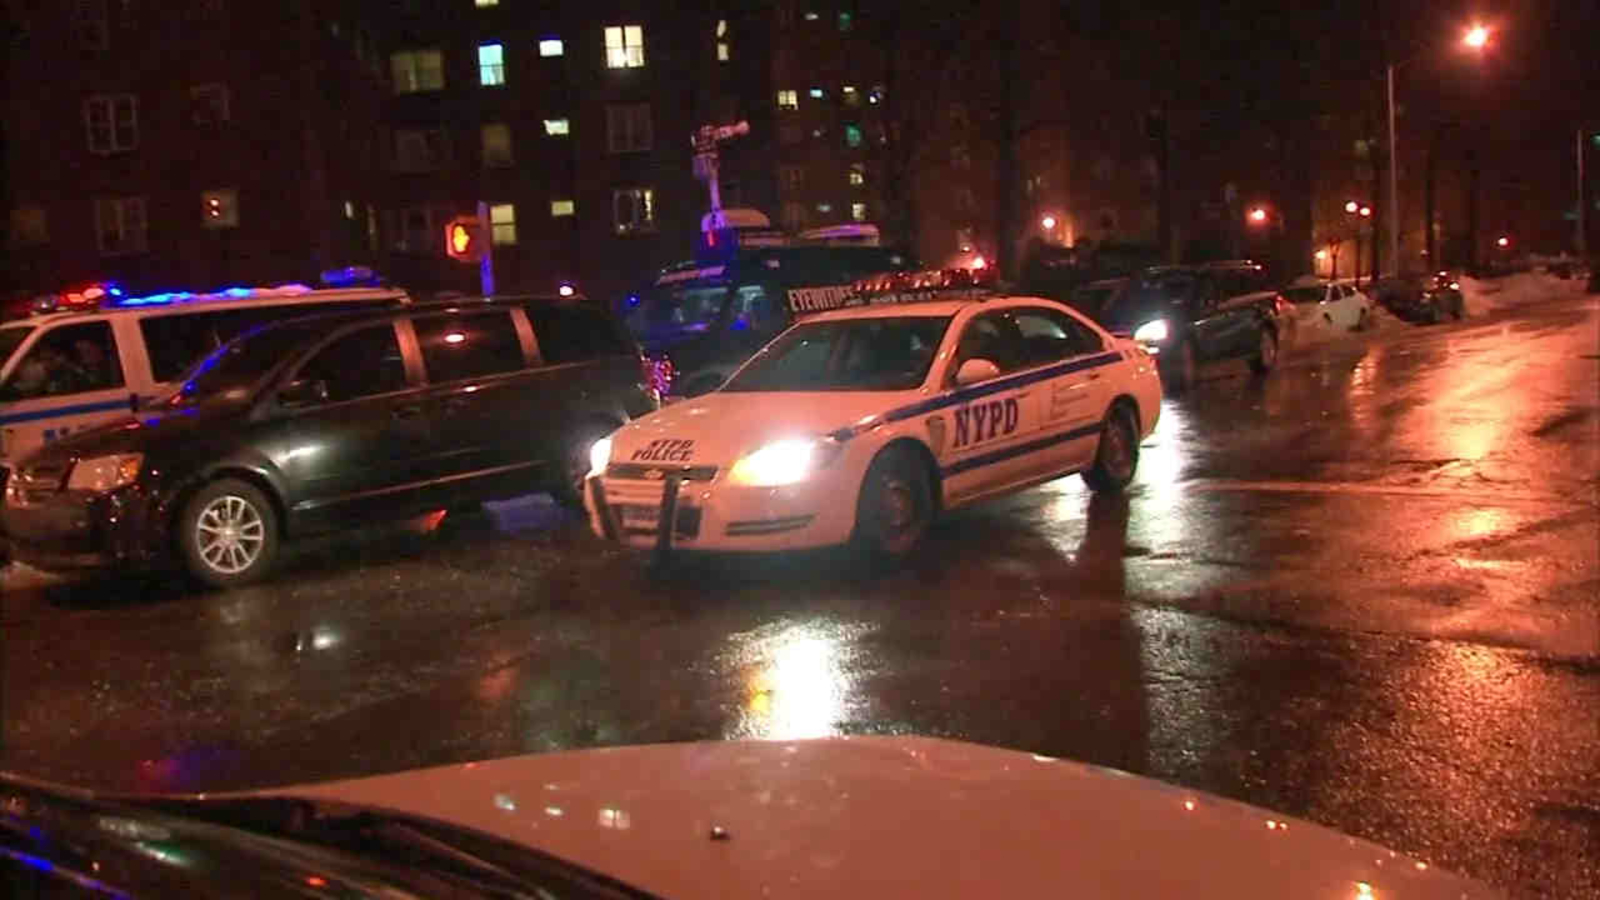 Nypd Man With Knife Shot By Police At East Village Apartment Building Abc7 New York